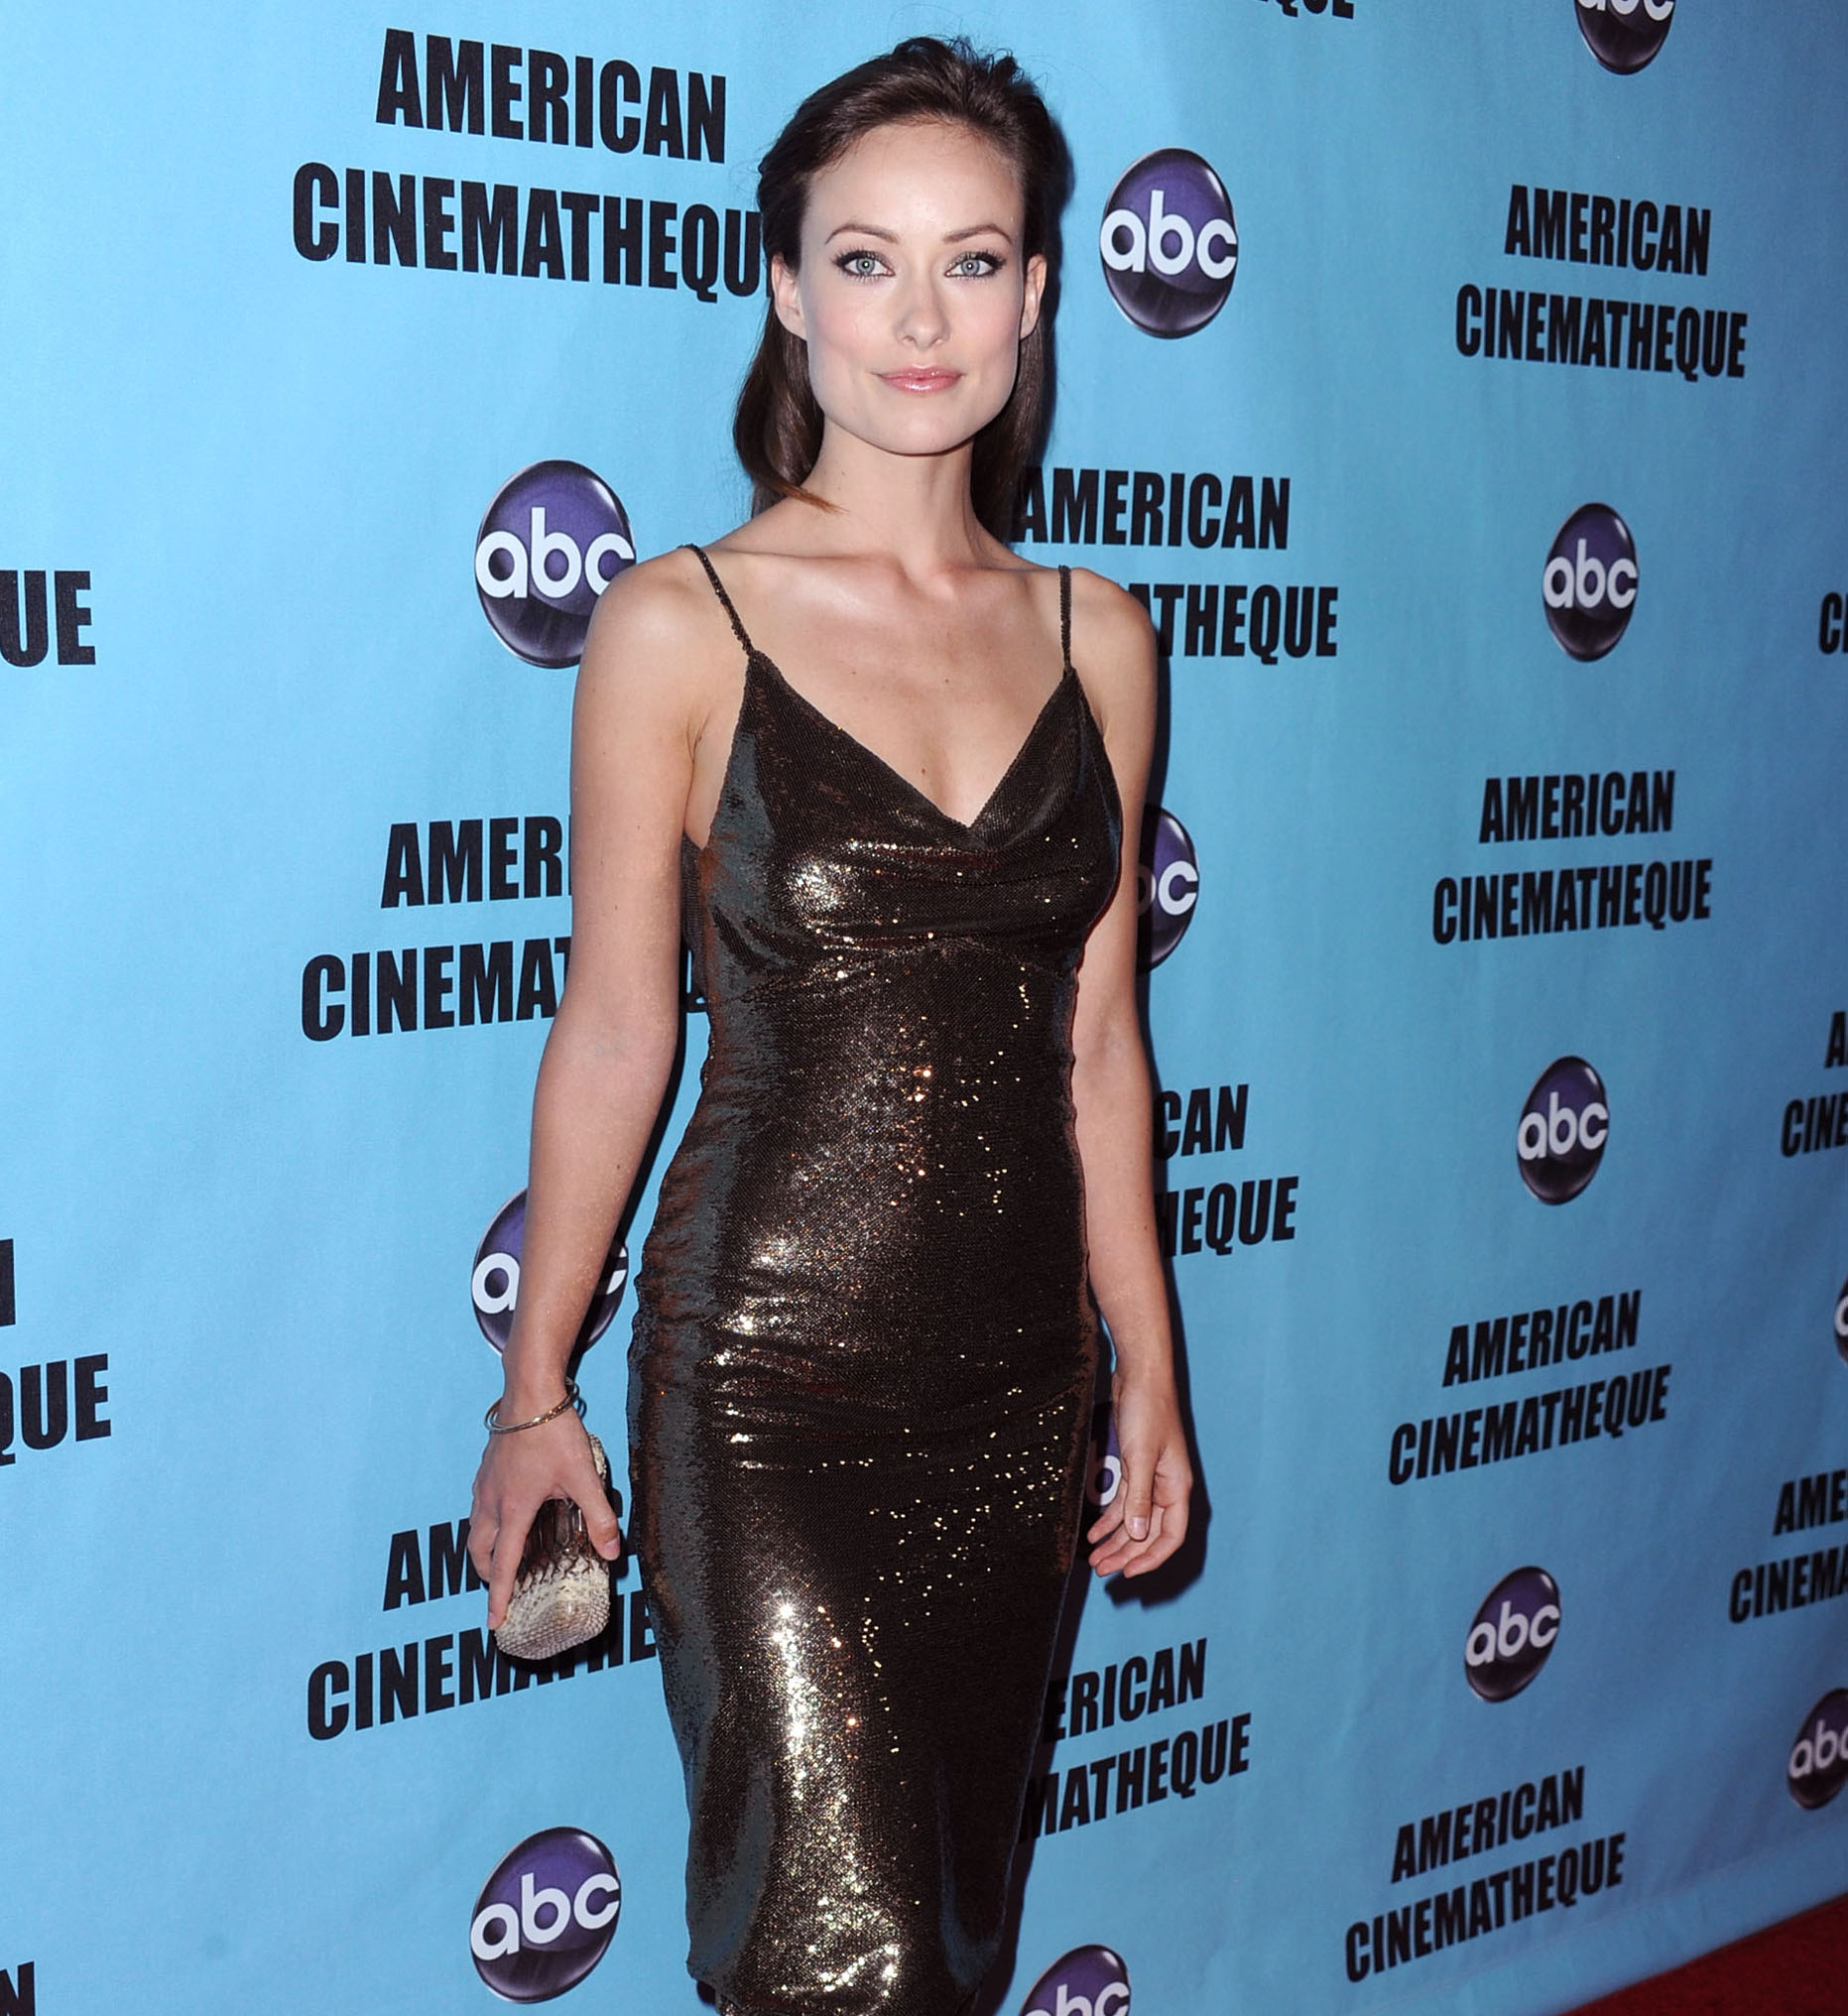 Olivia Wilde, Olivia Wilde photos, hot celebrity women